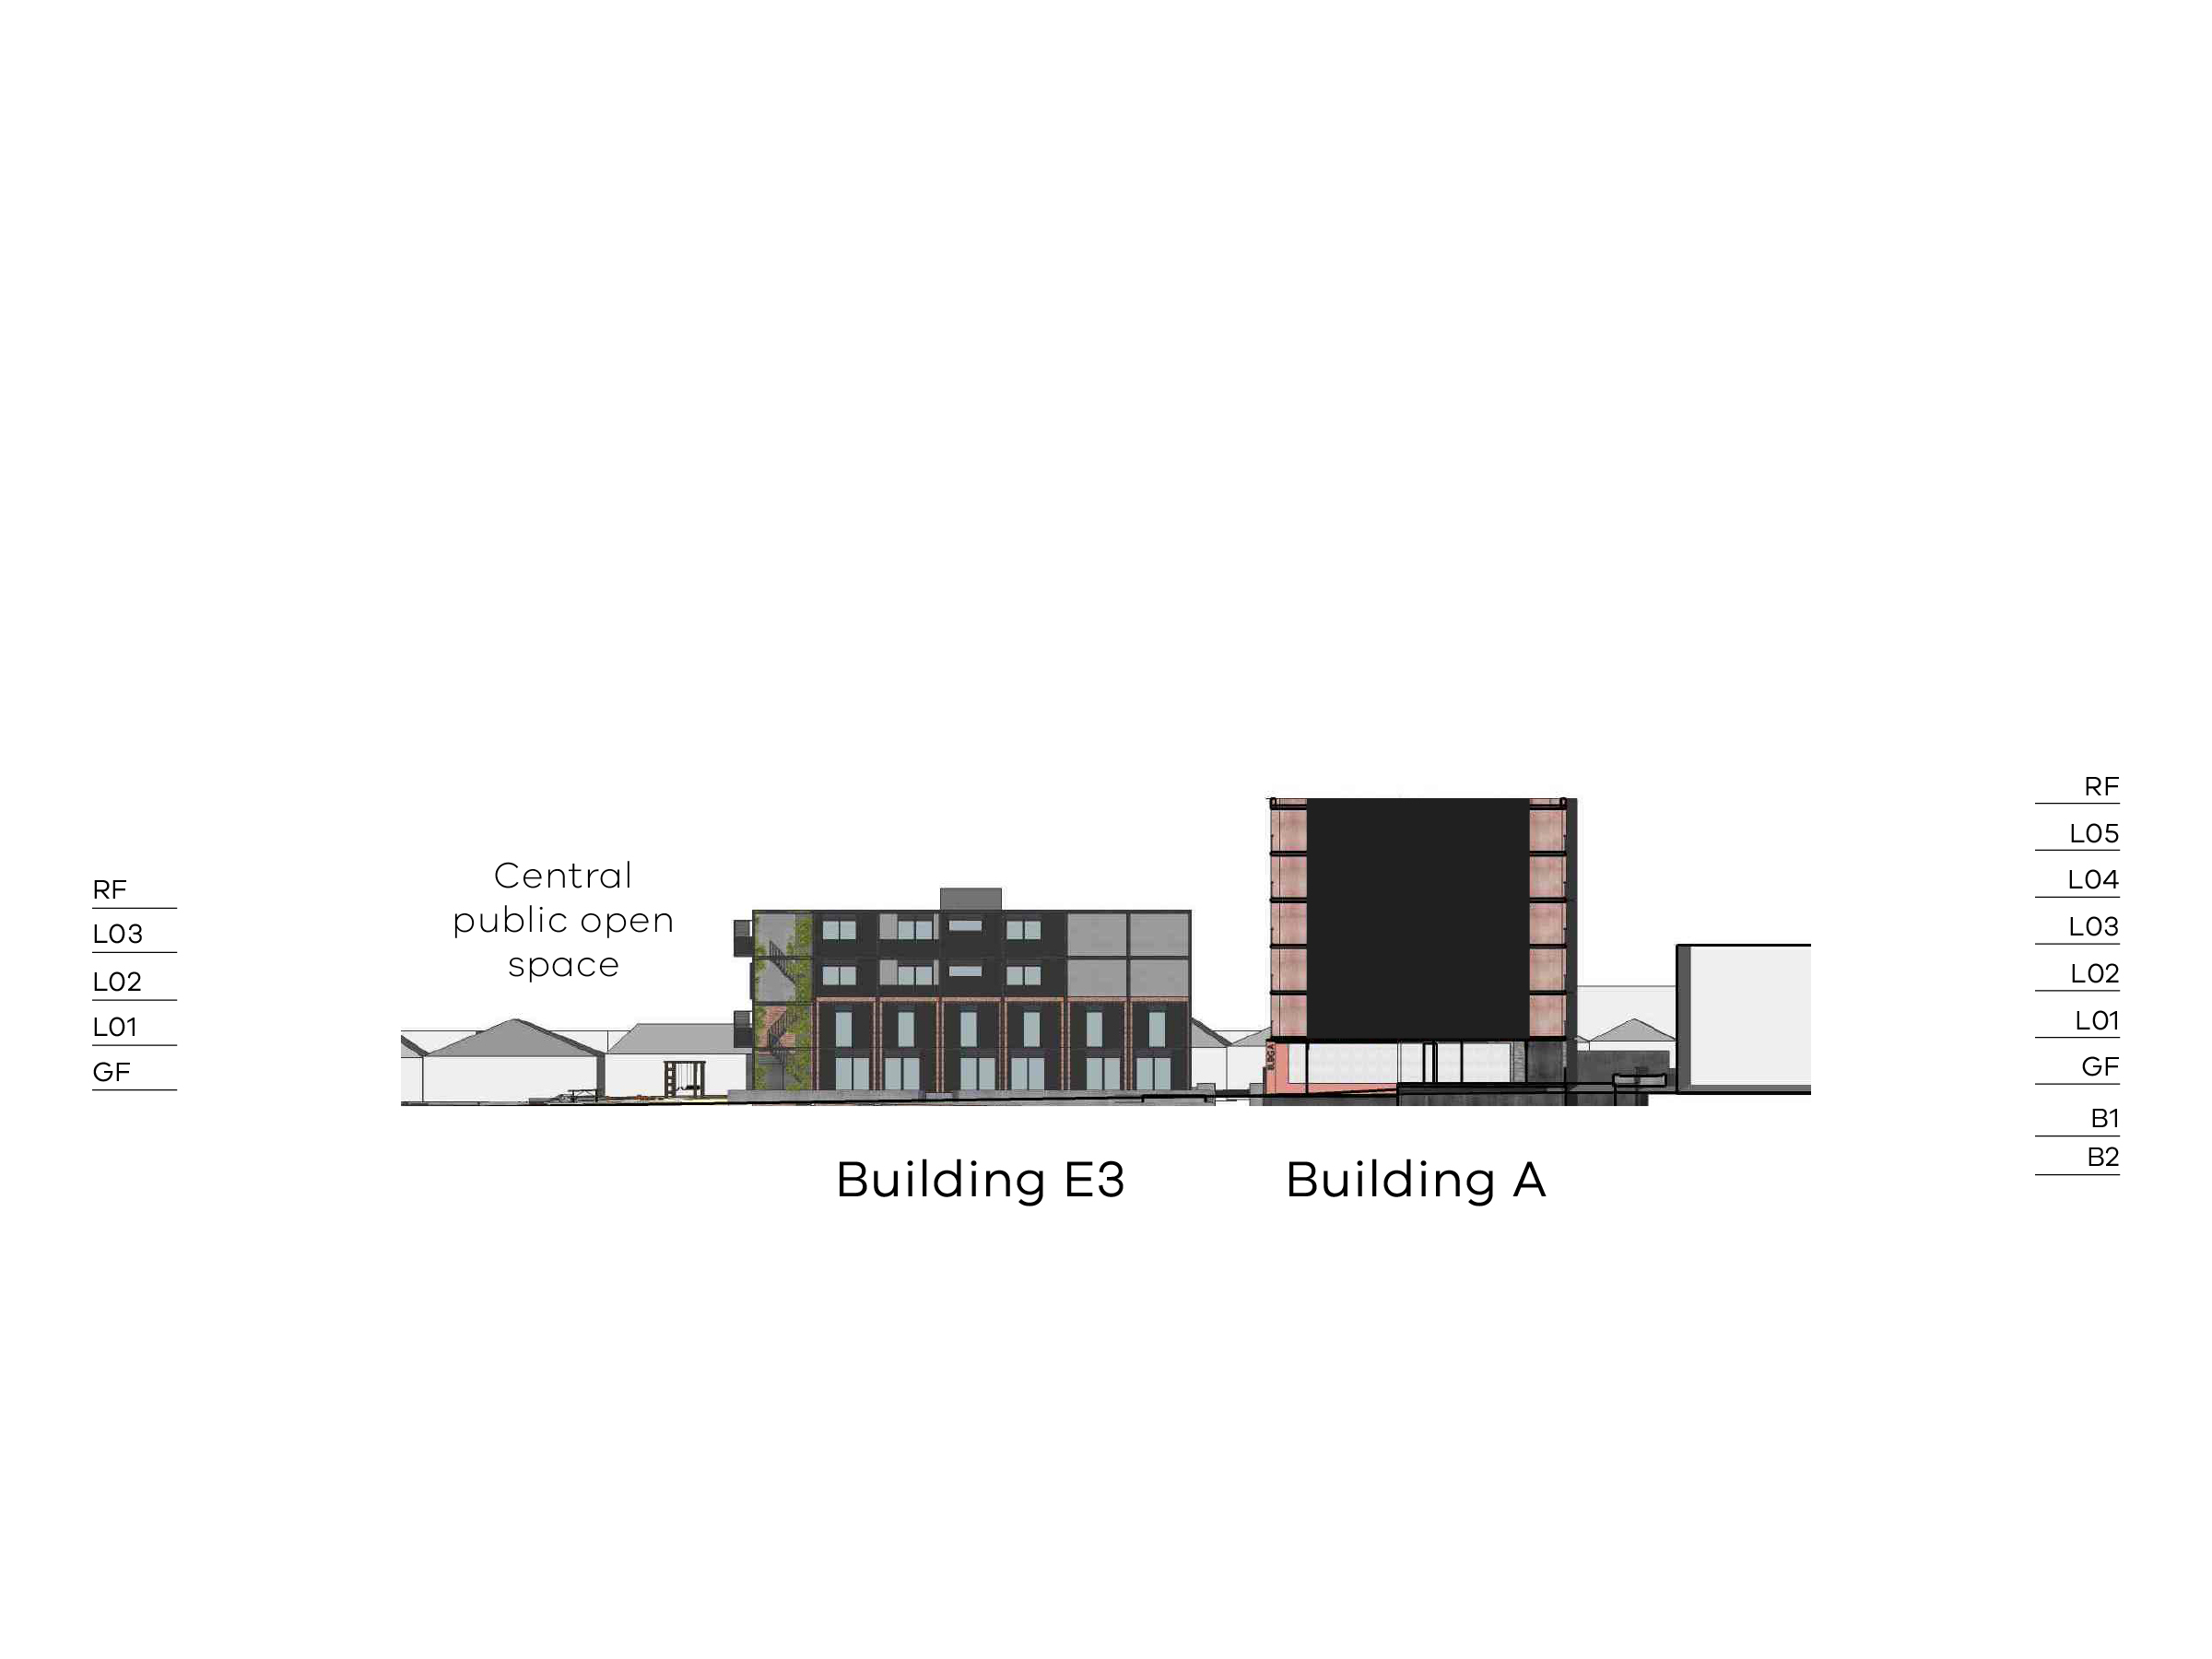 Diagram showing the heights of buildings A and E3 as seen from the walkway on site looking towards Bendigo Street. Building A has a ground floor, level 1-5 and a flat roof. Building E3 has a ground floor, level 1-3 and a flat roof.